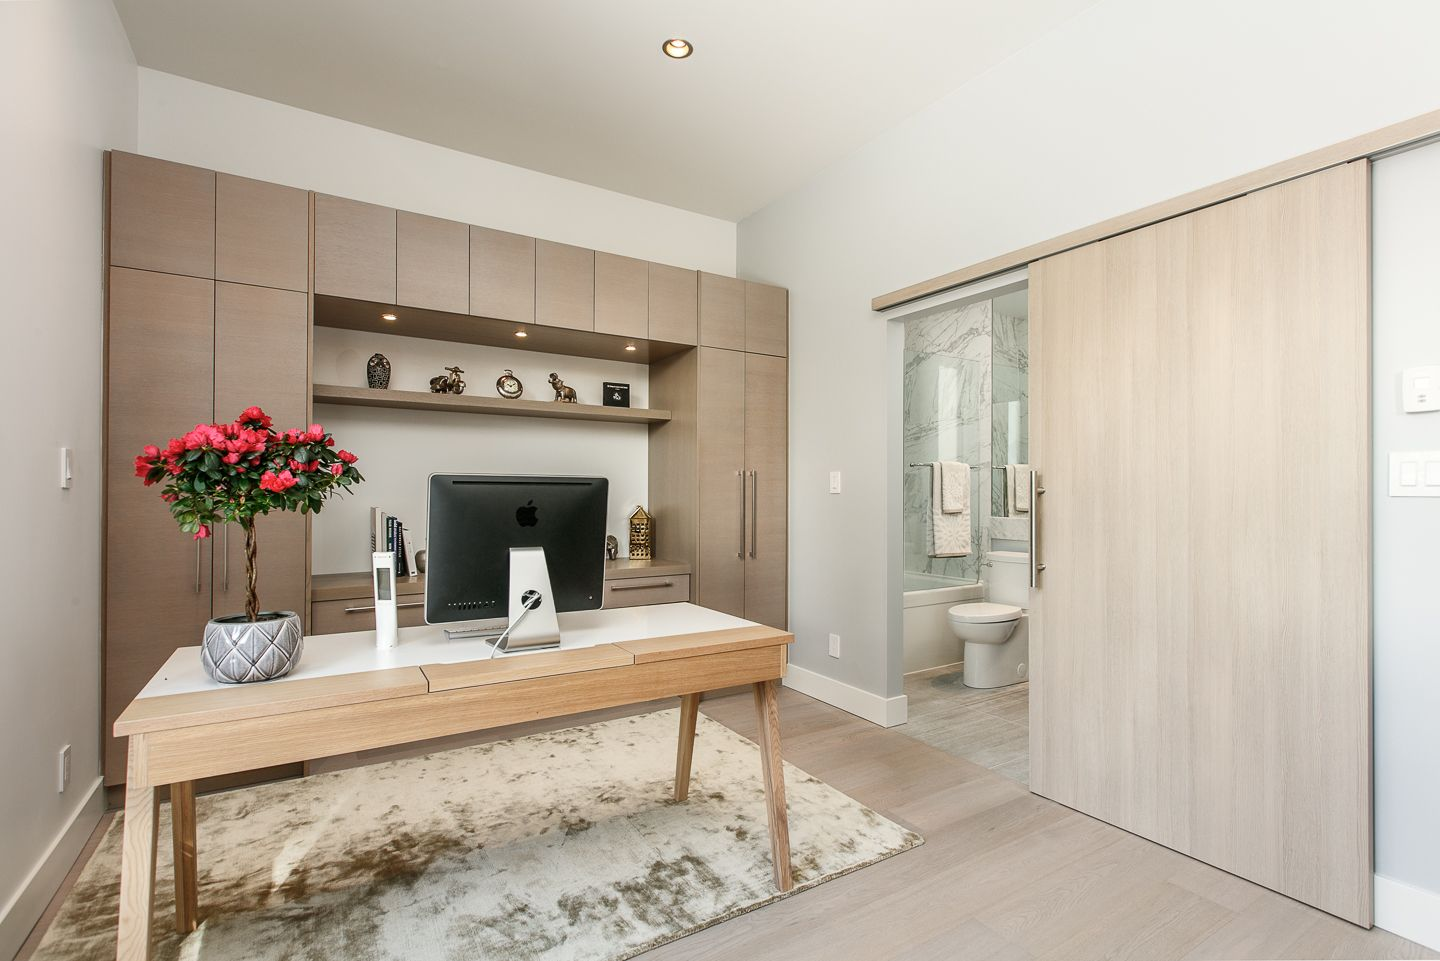 Photo 17: Photos: 6978 LAUREL ST in VANCOUVER: South Cambie House for sale (Vancouver West)